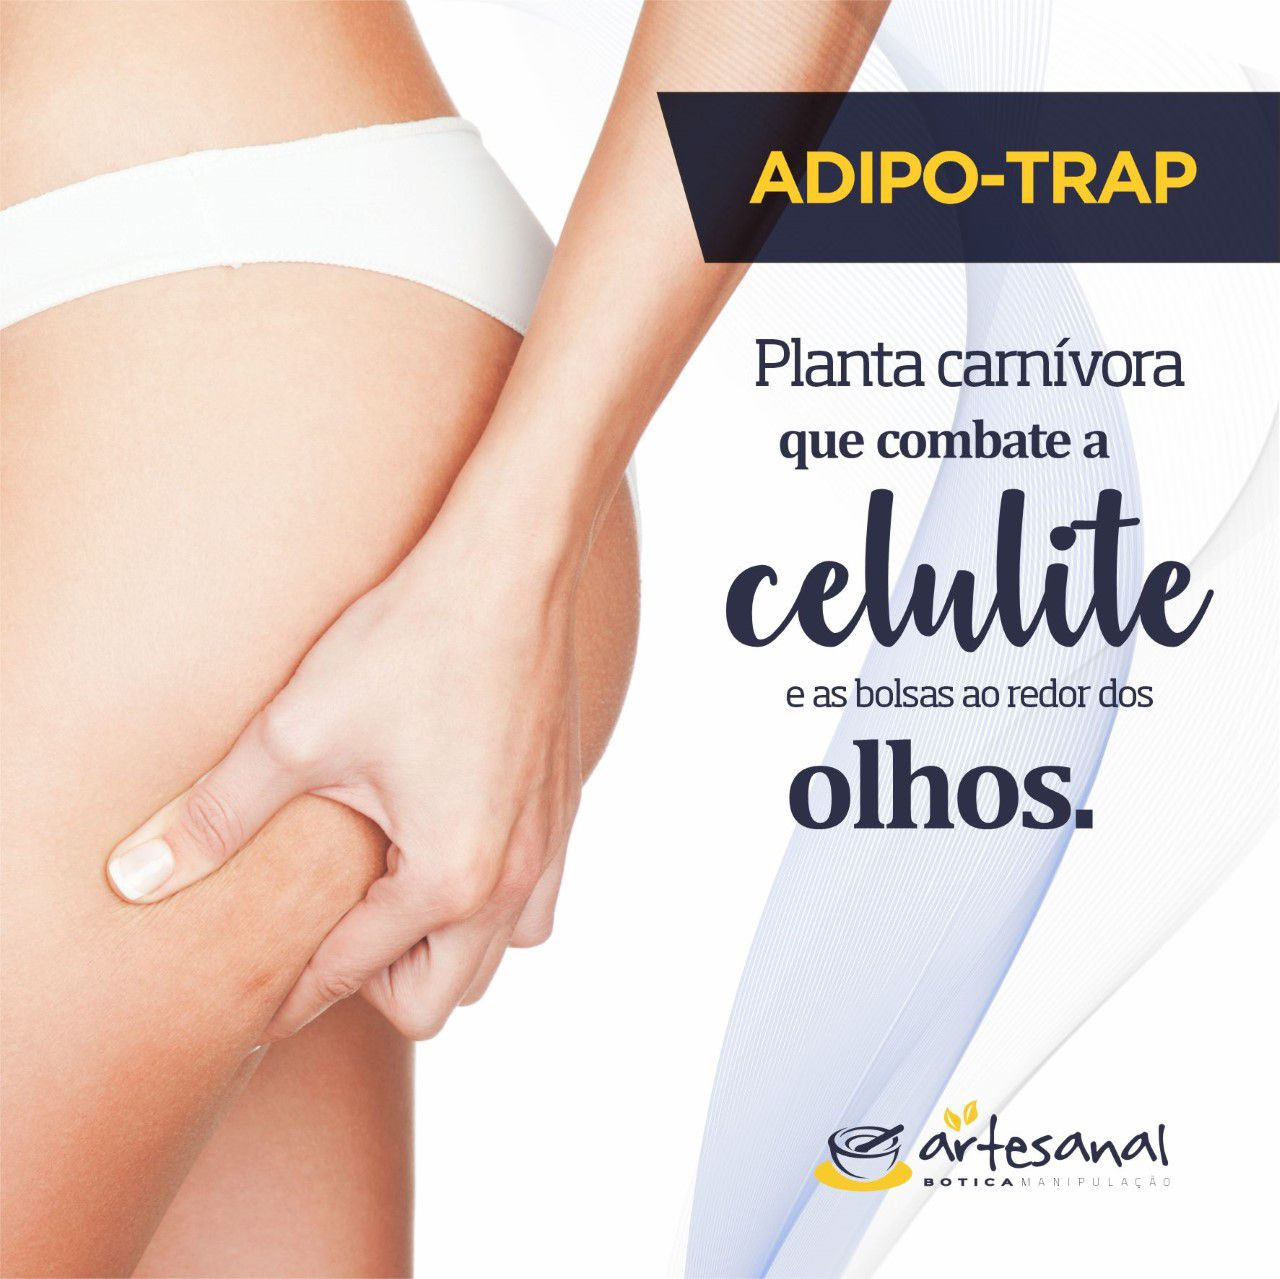 Sérum Anticelulite Com Adipo-trap - 50ml